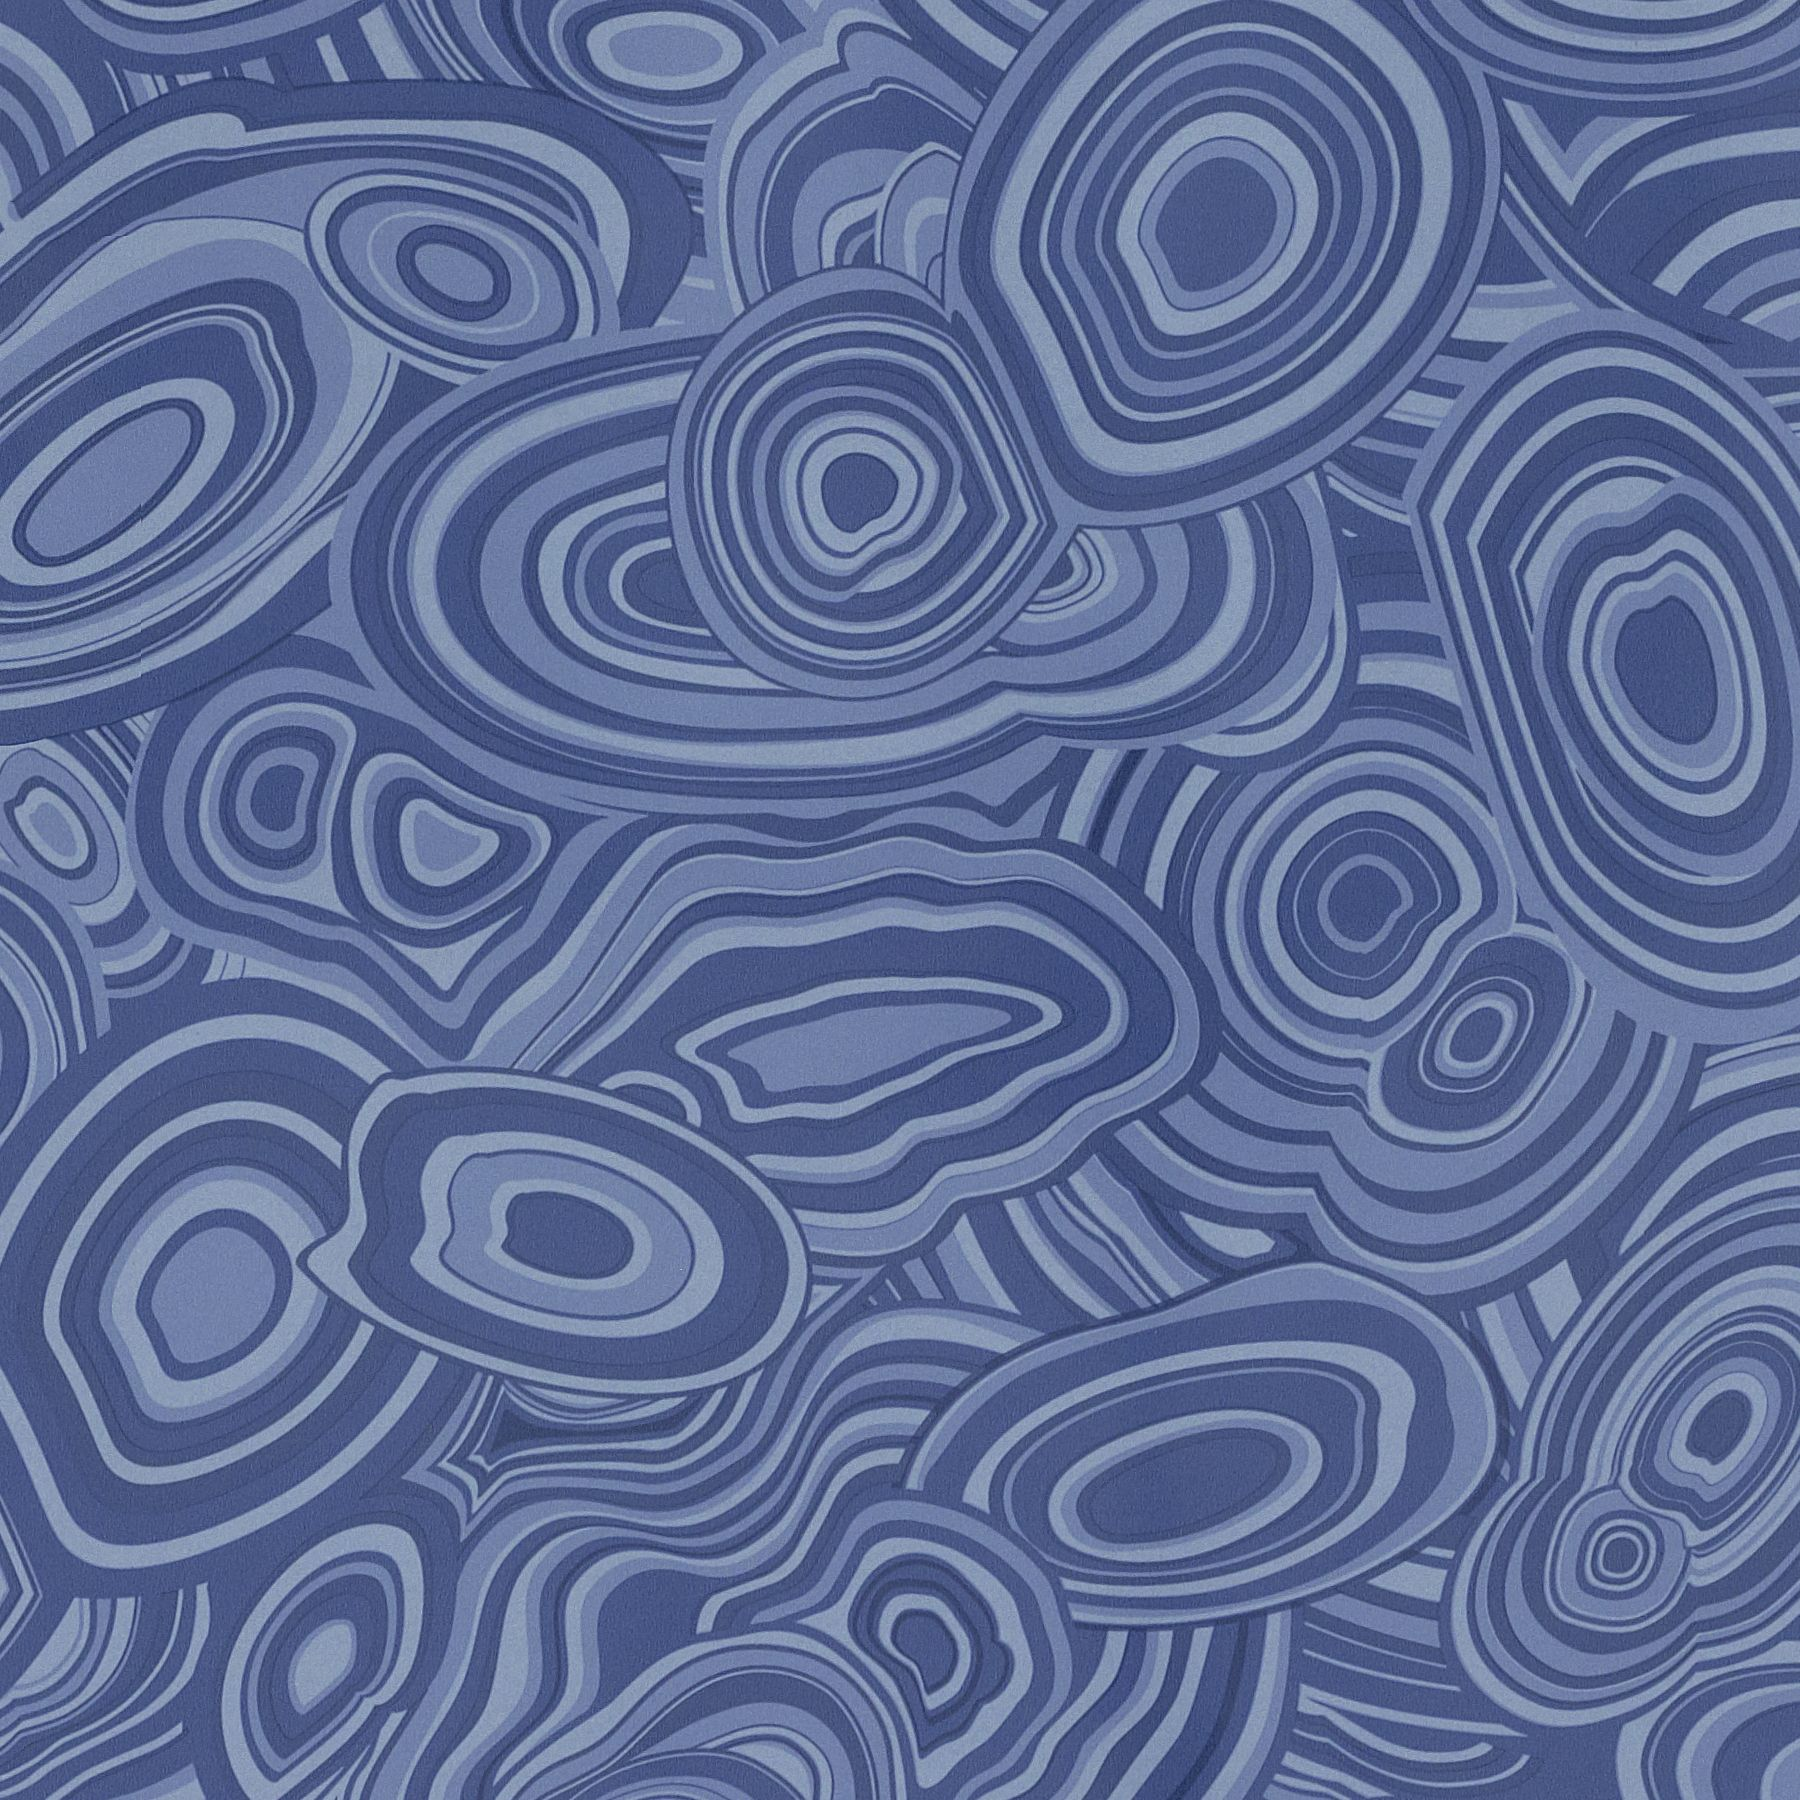 New From Formicagroup Blue Malachite Jonathan Adler Collection Formica Laminate Laminate Kitchen Formica